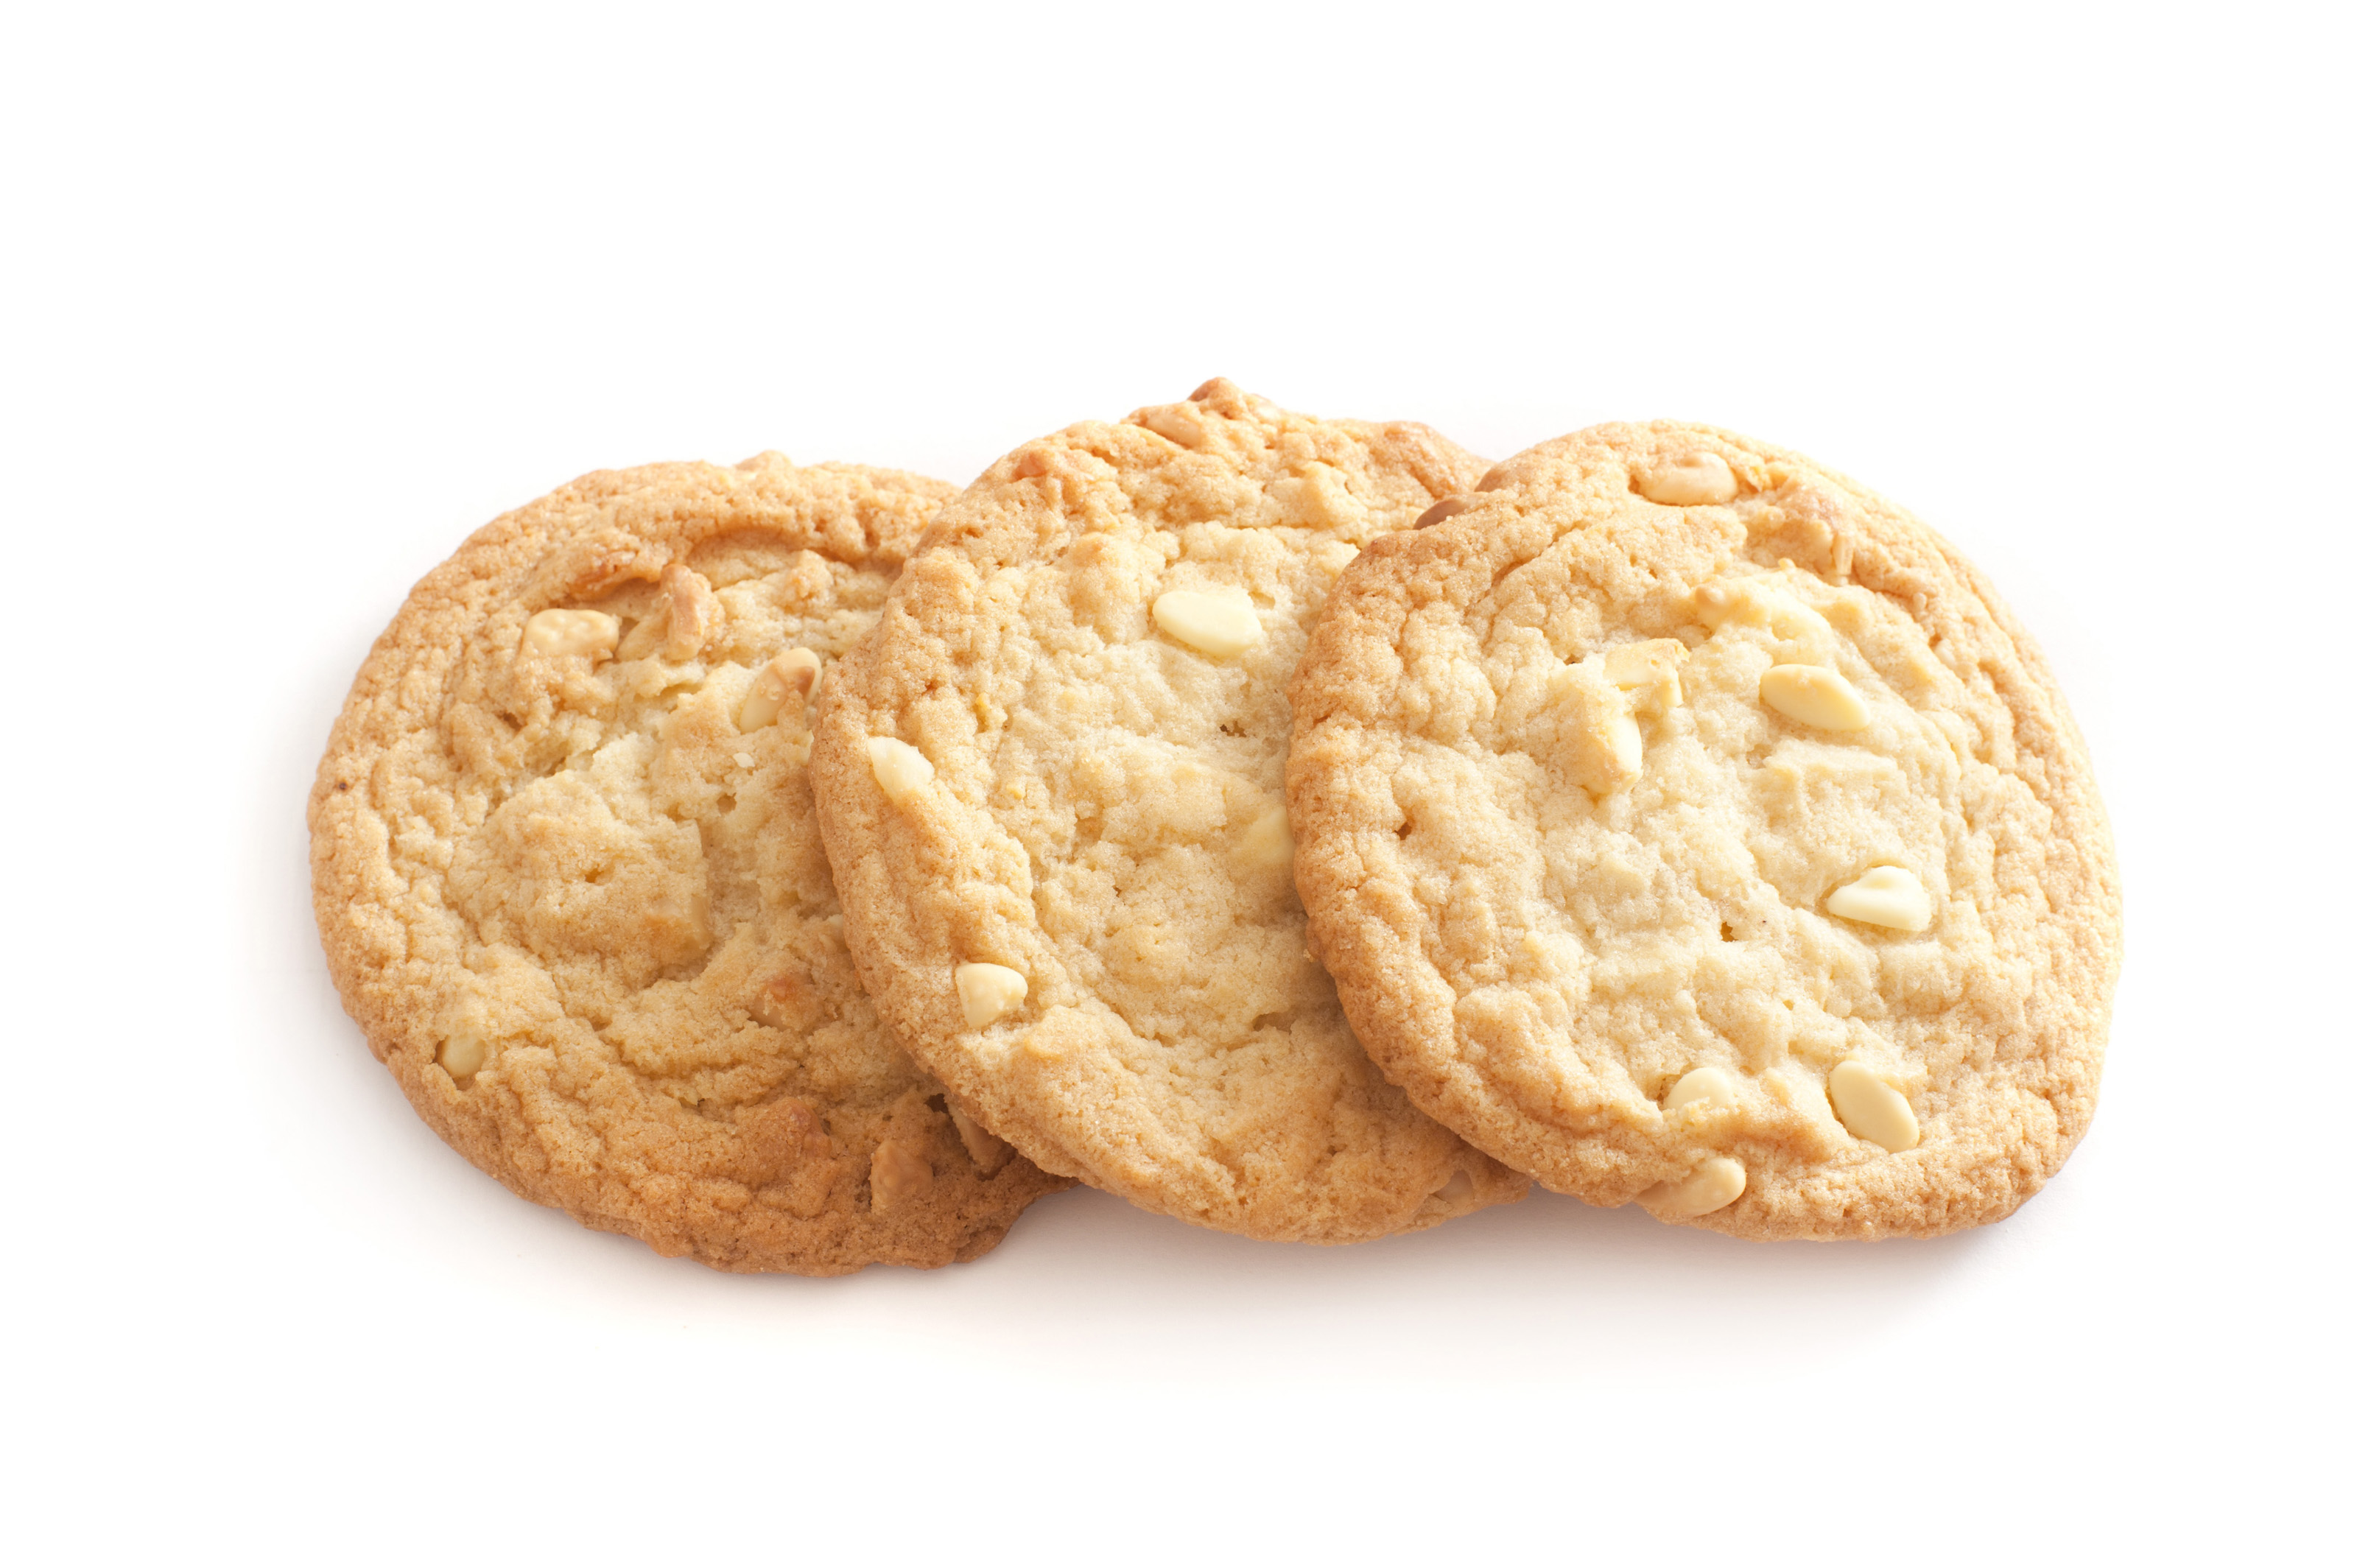 Three golden fresh crunchy nut cookies arranged in an overlapping line ...